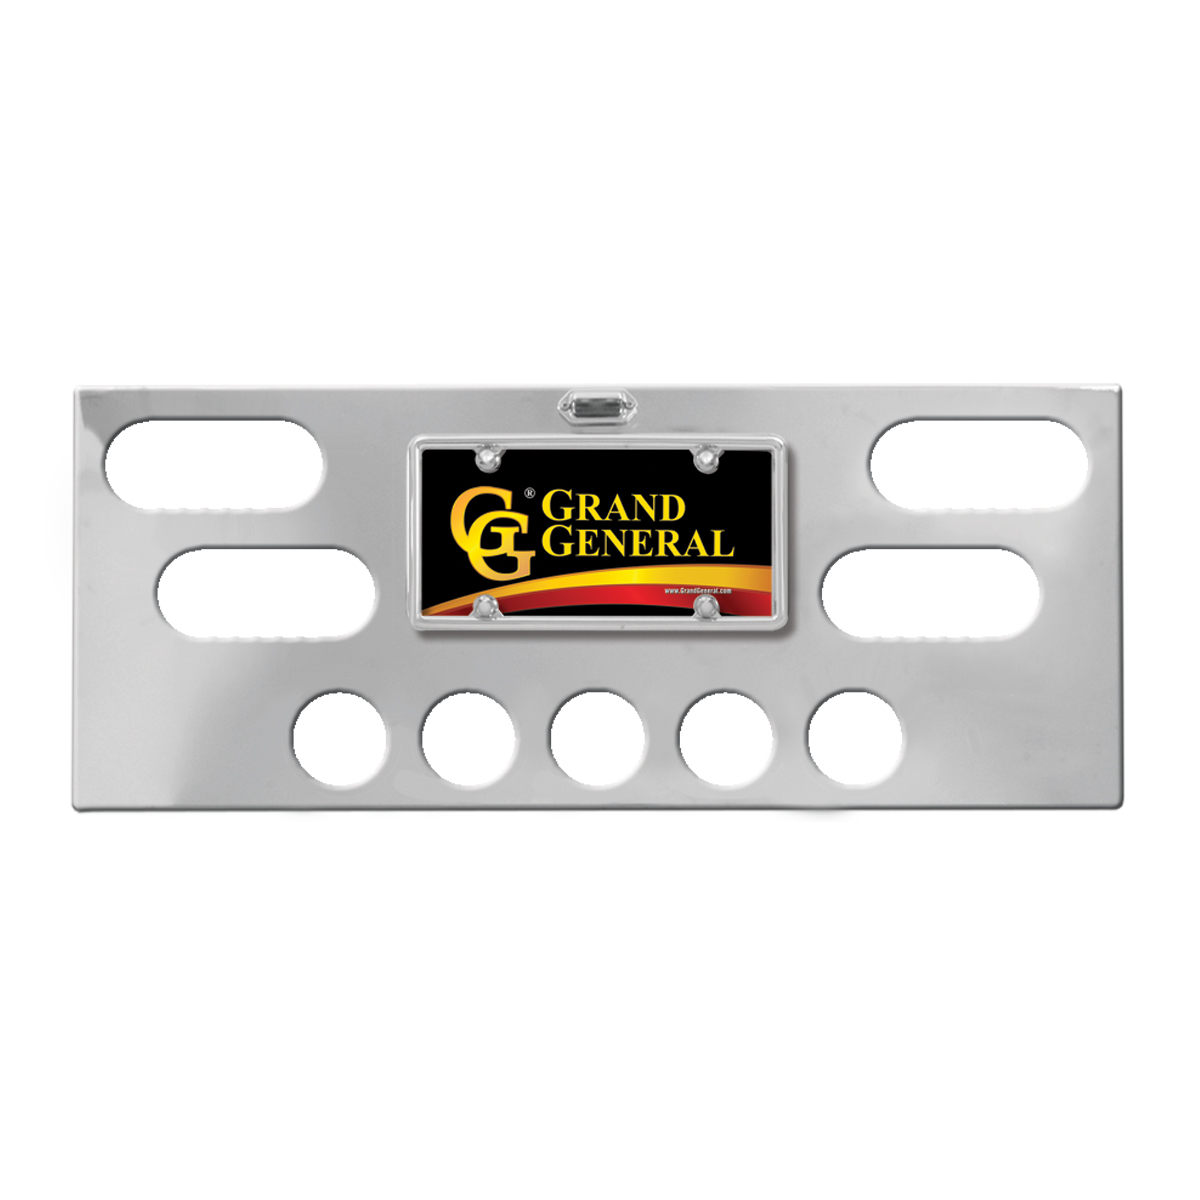 #91640 Chrome Plated Steel Panel Only